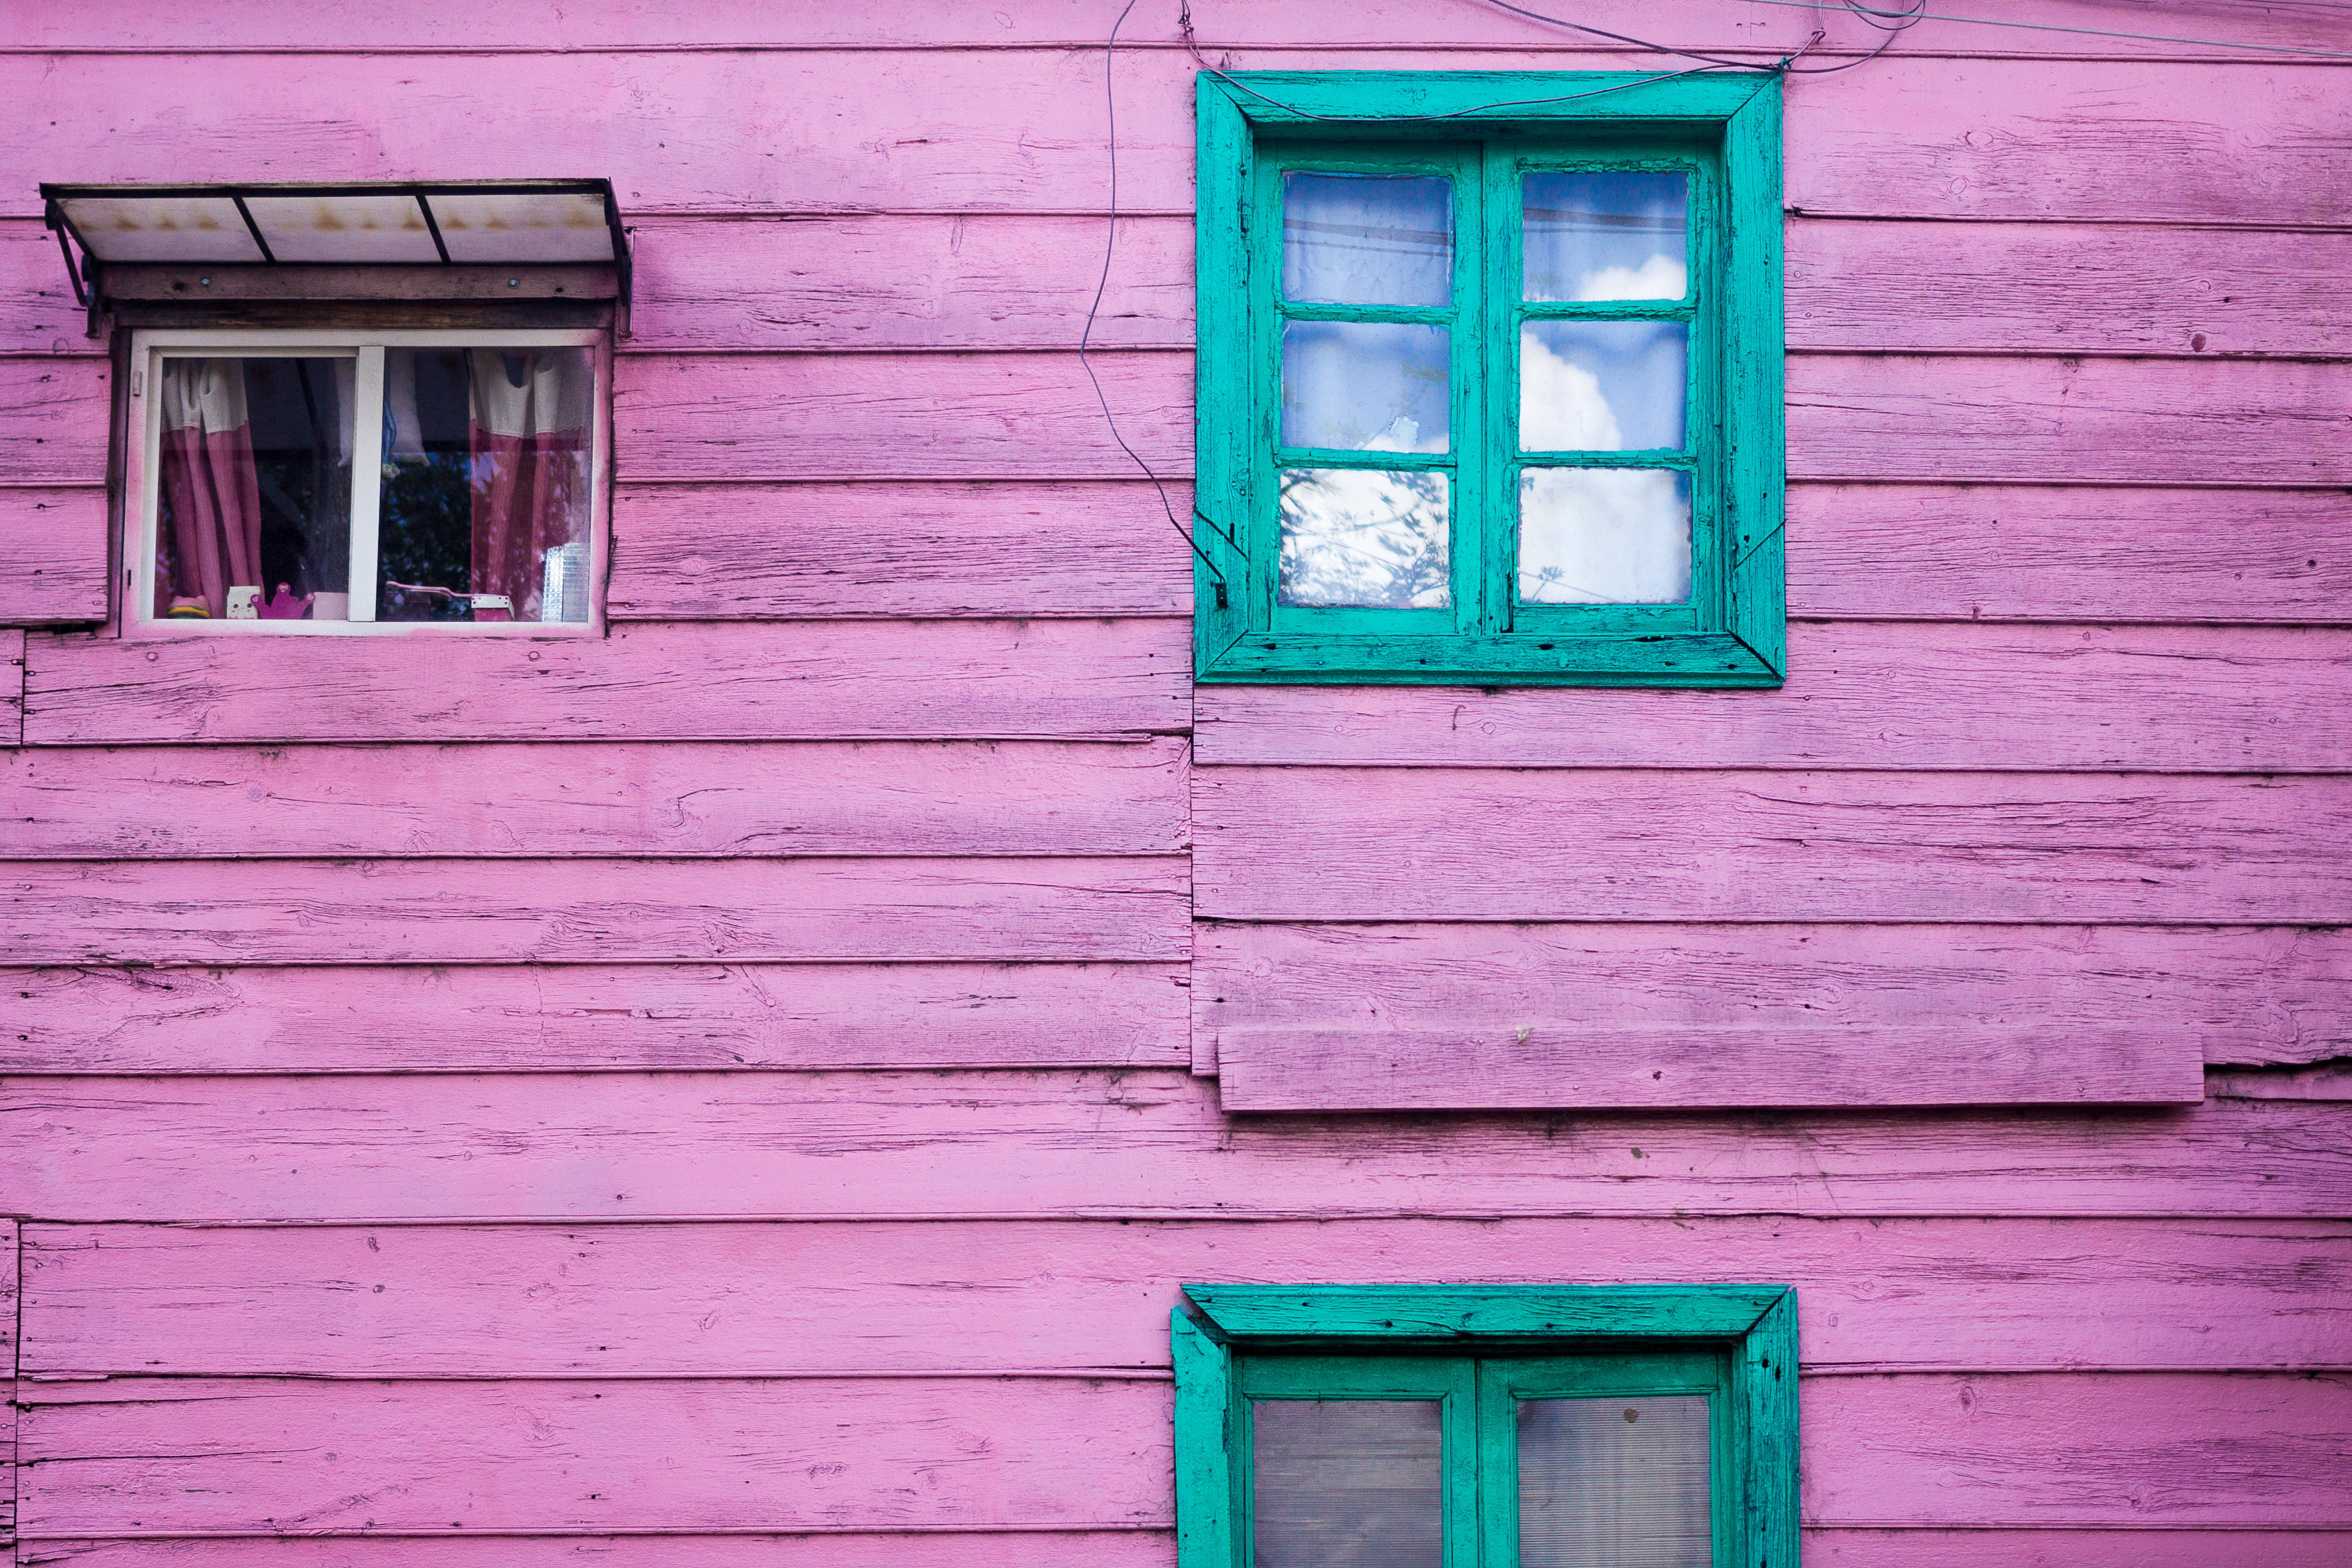 Purple Wooden House With Green Wooden Windows